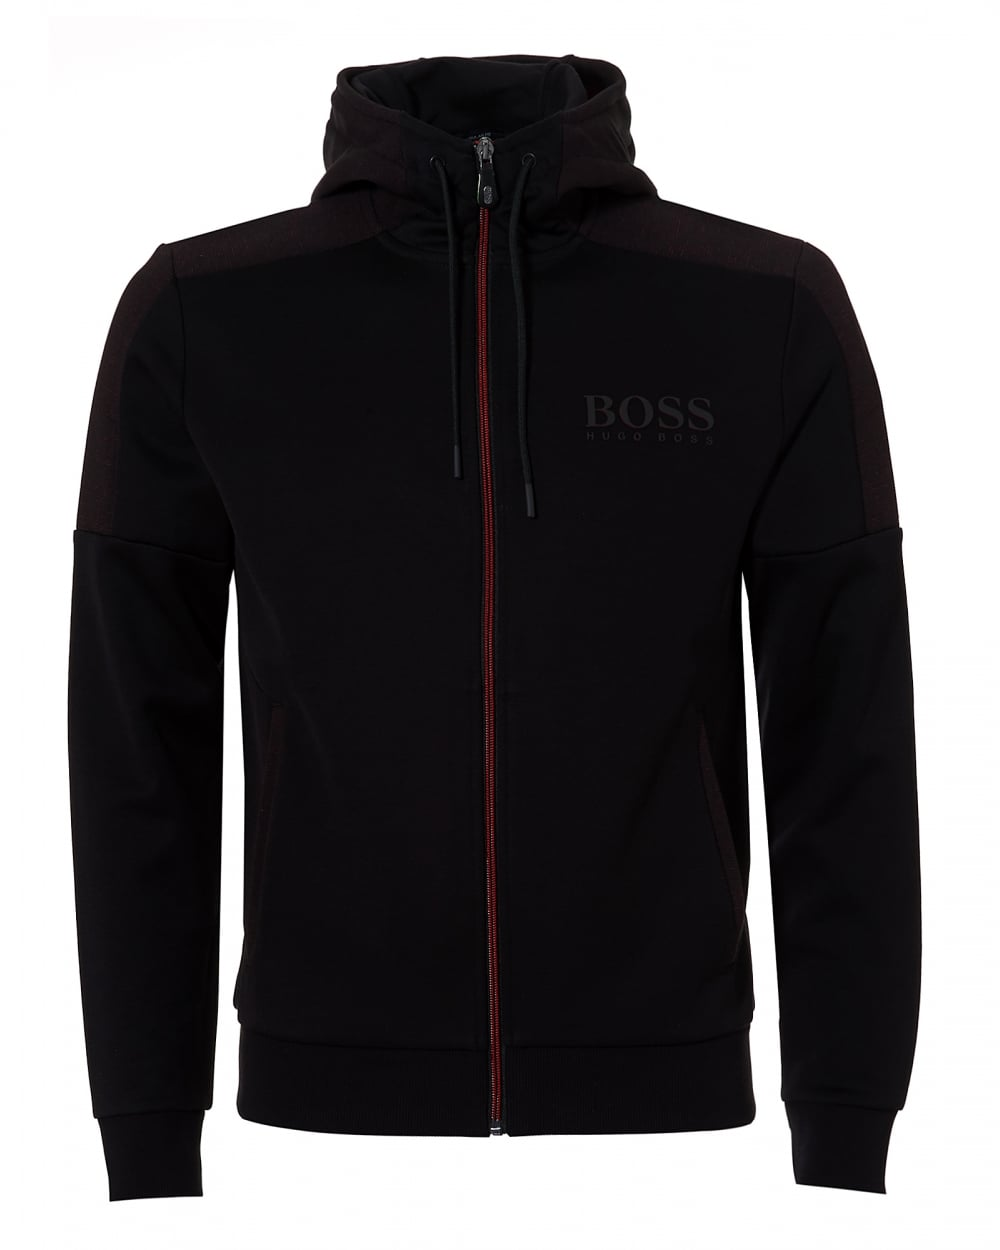 Hugo boss trainings jacke